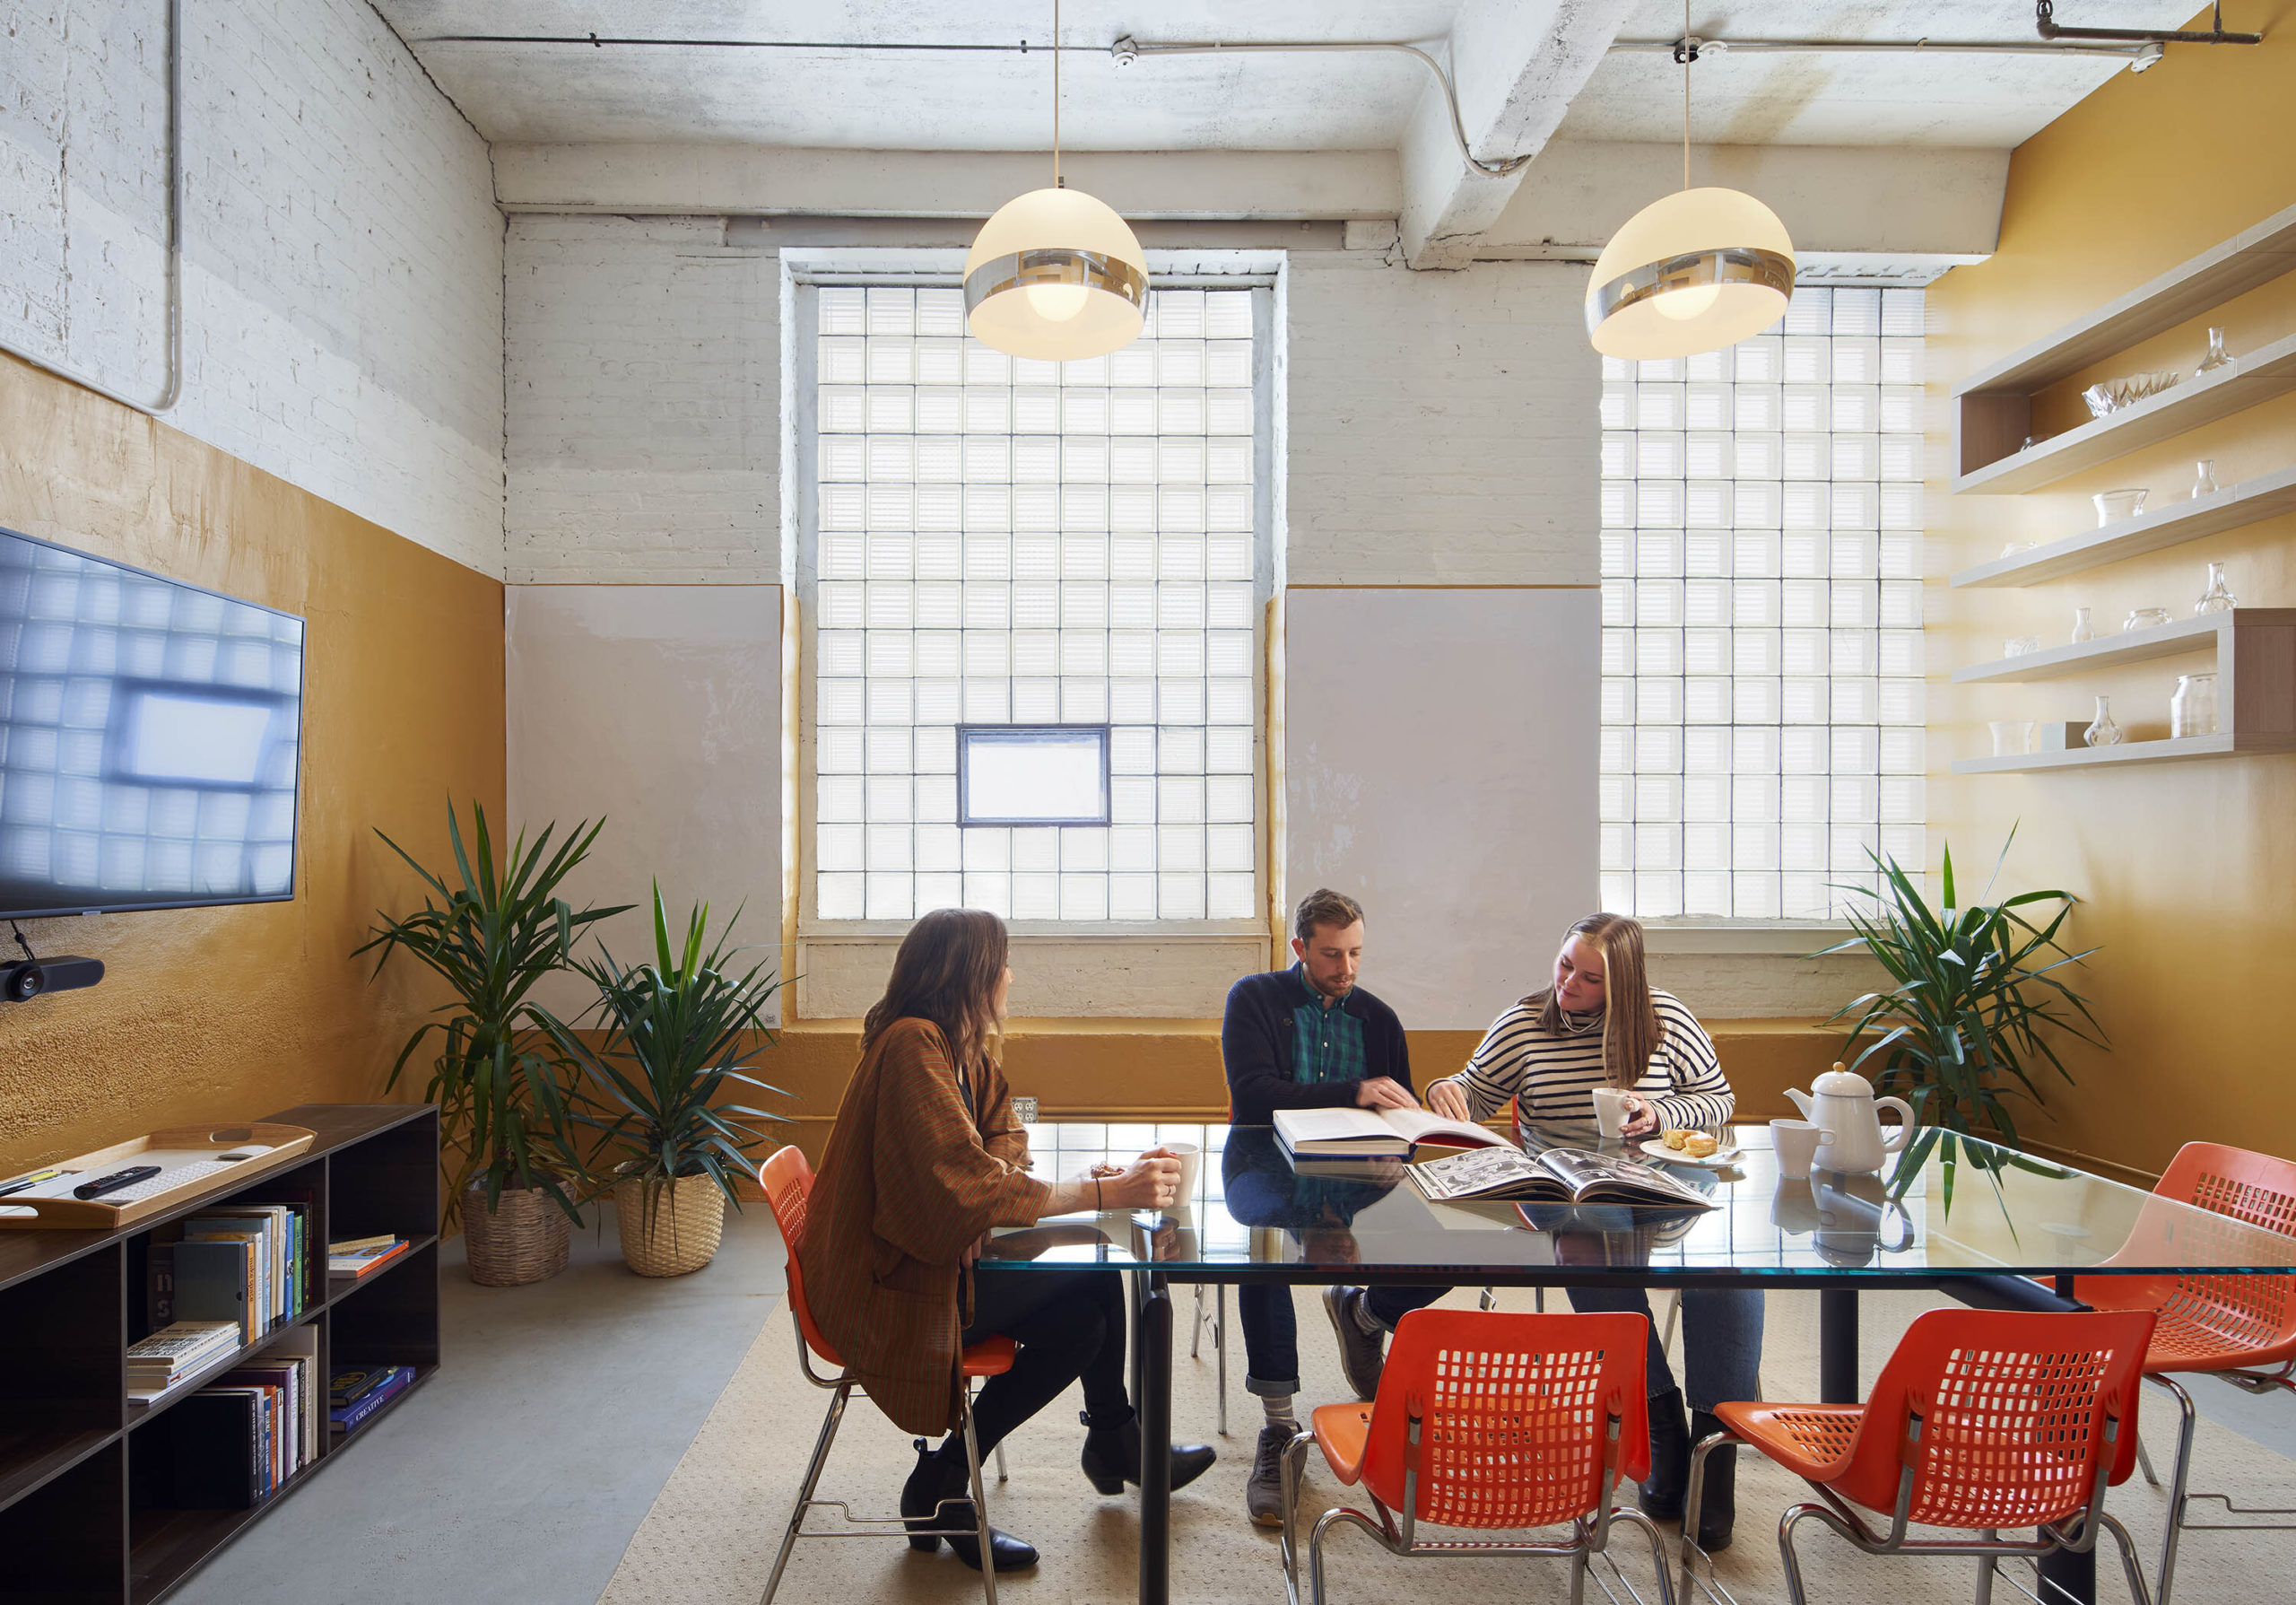 Coworking space for remote workers in Chicago